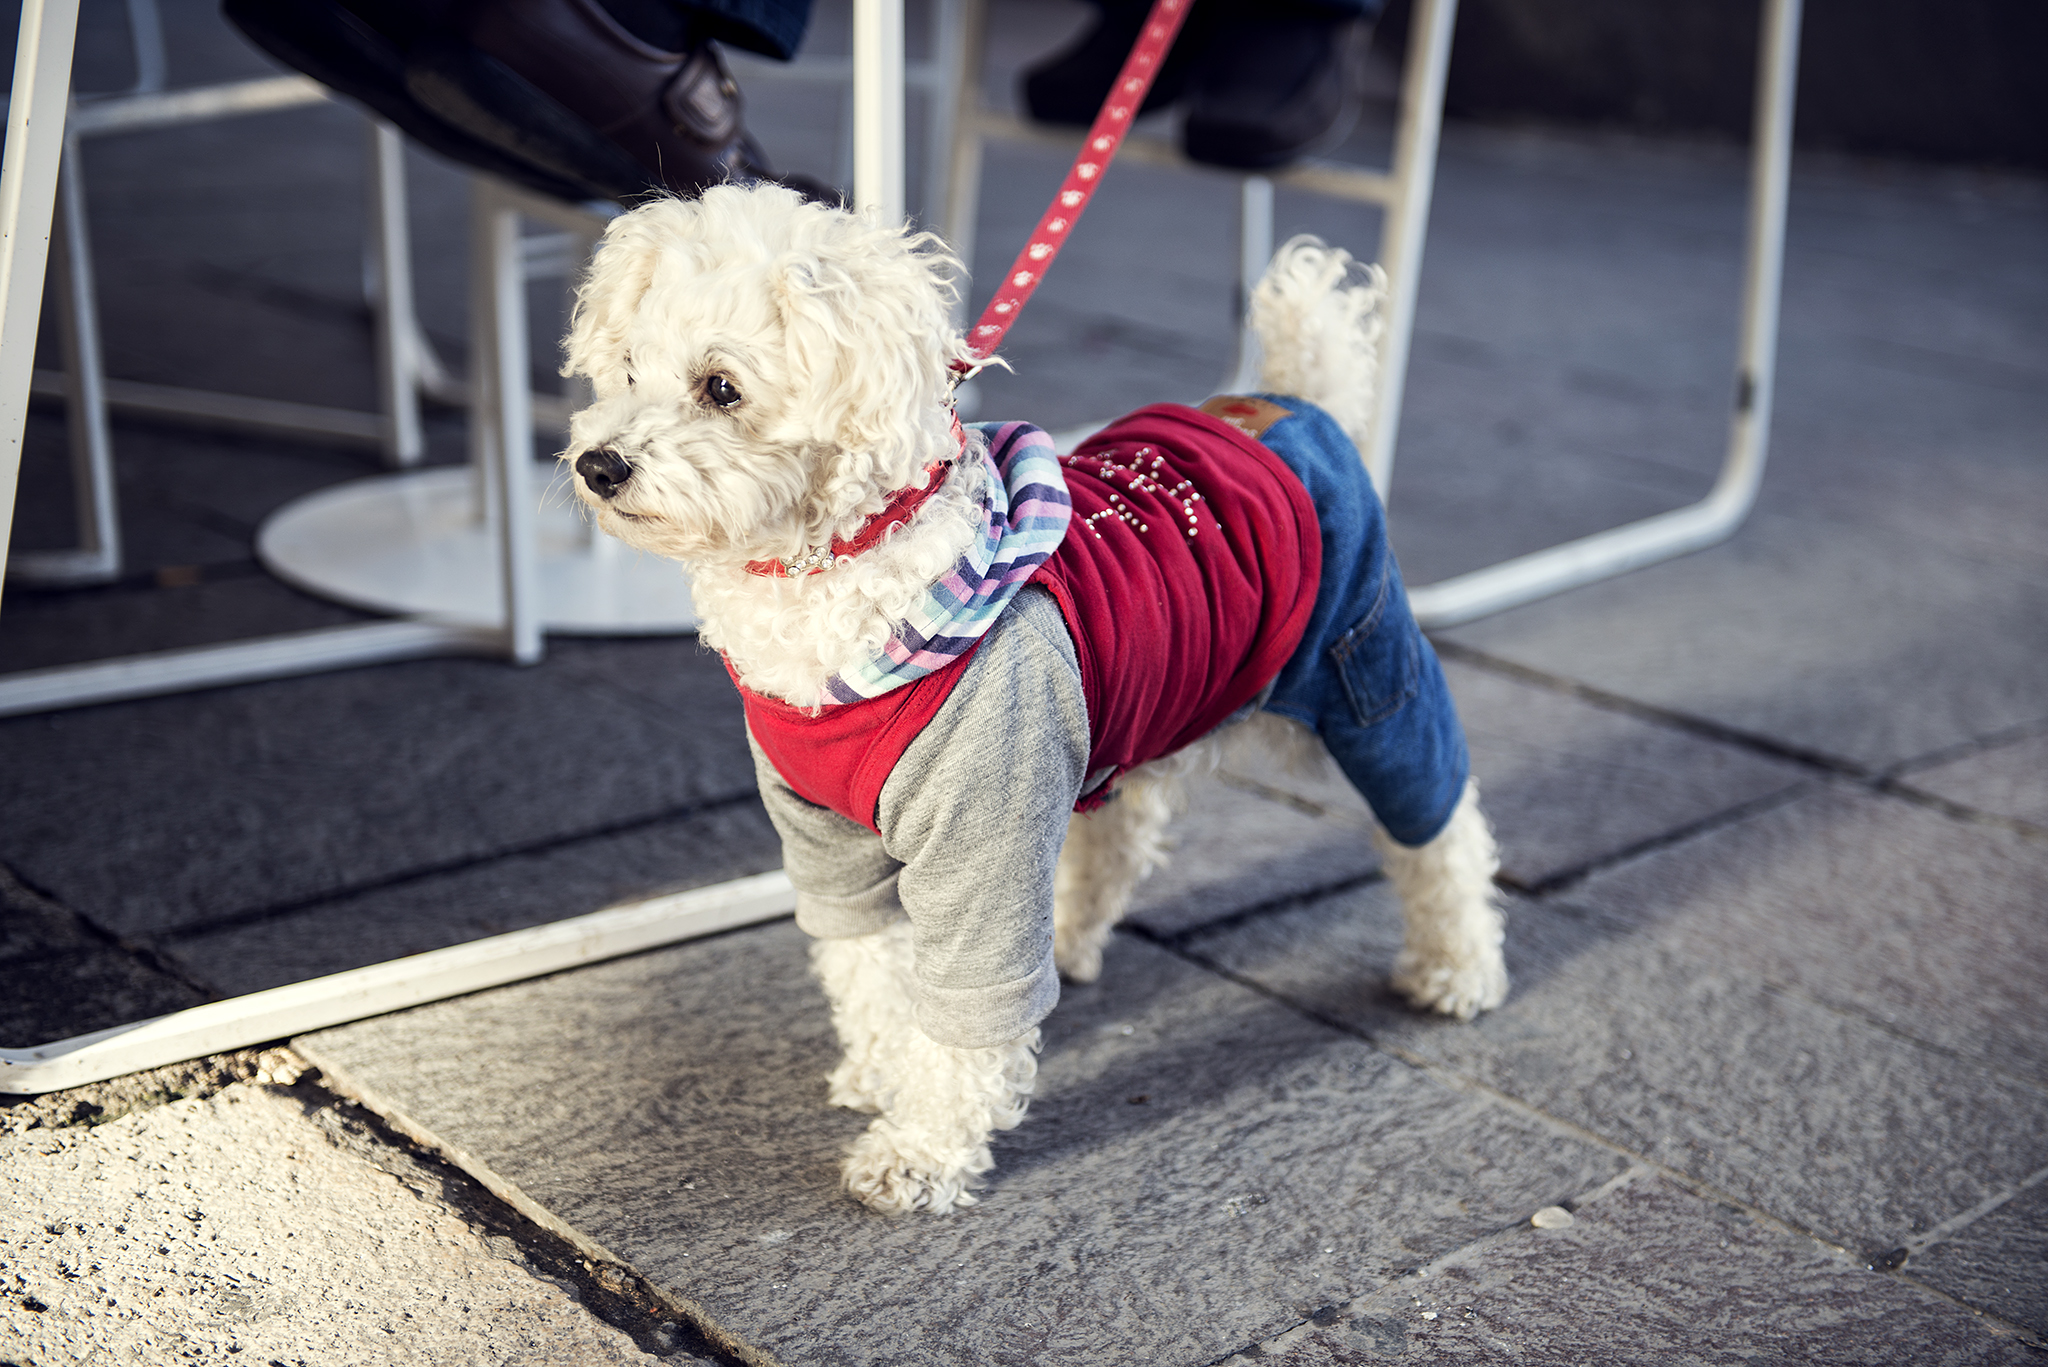 Maltese poodle dressed up in a colourful jumper